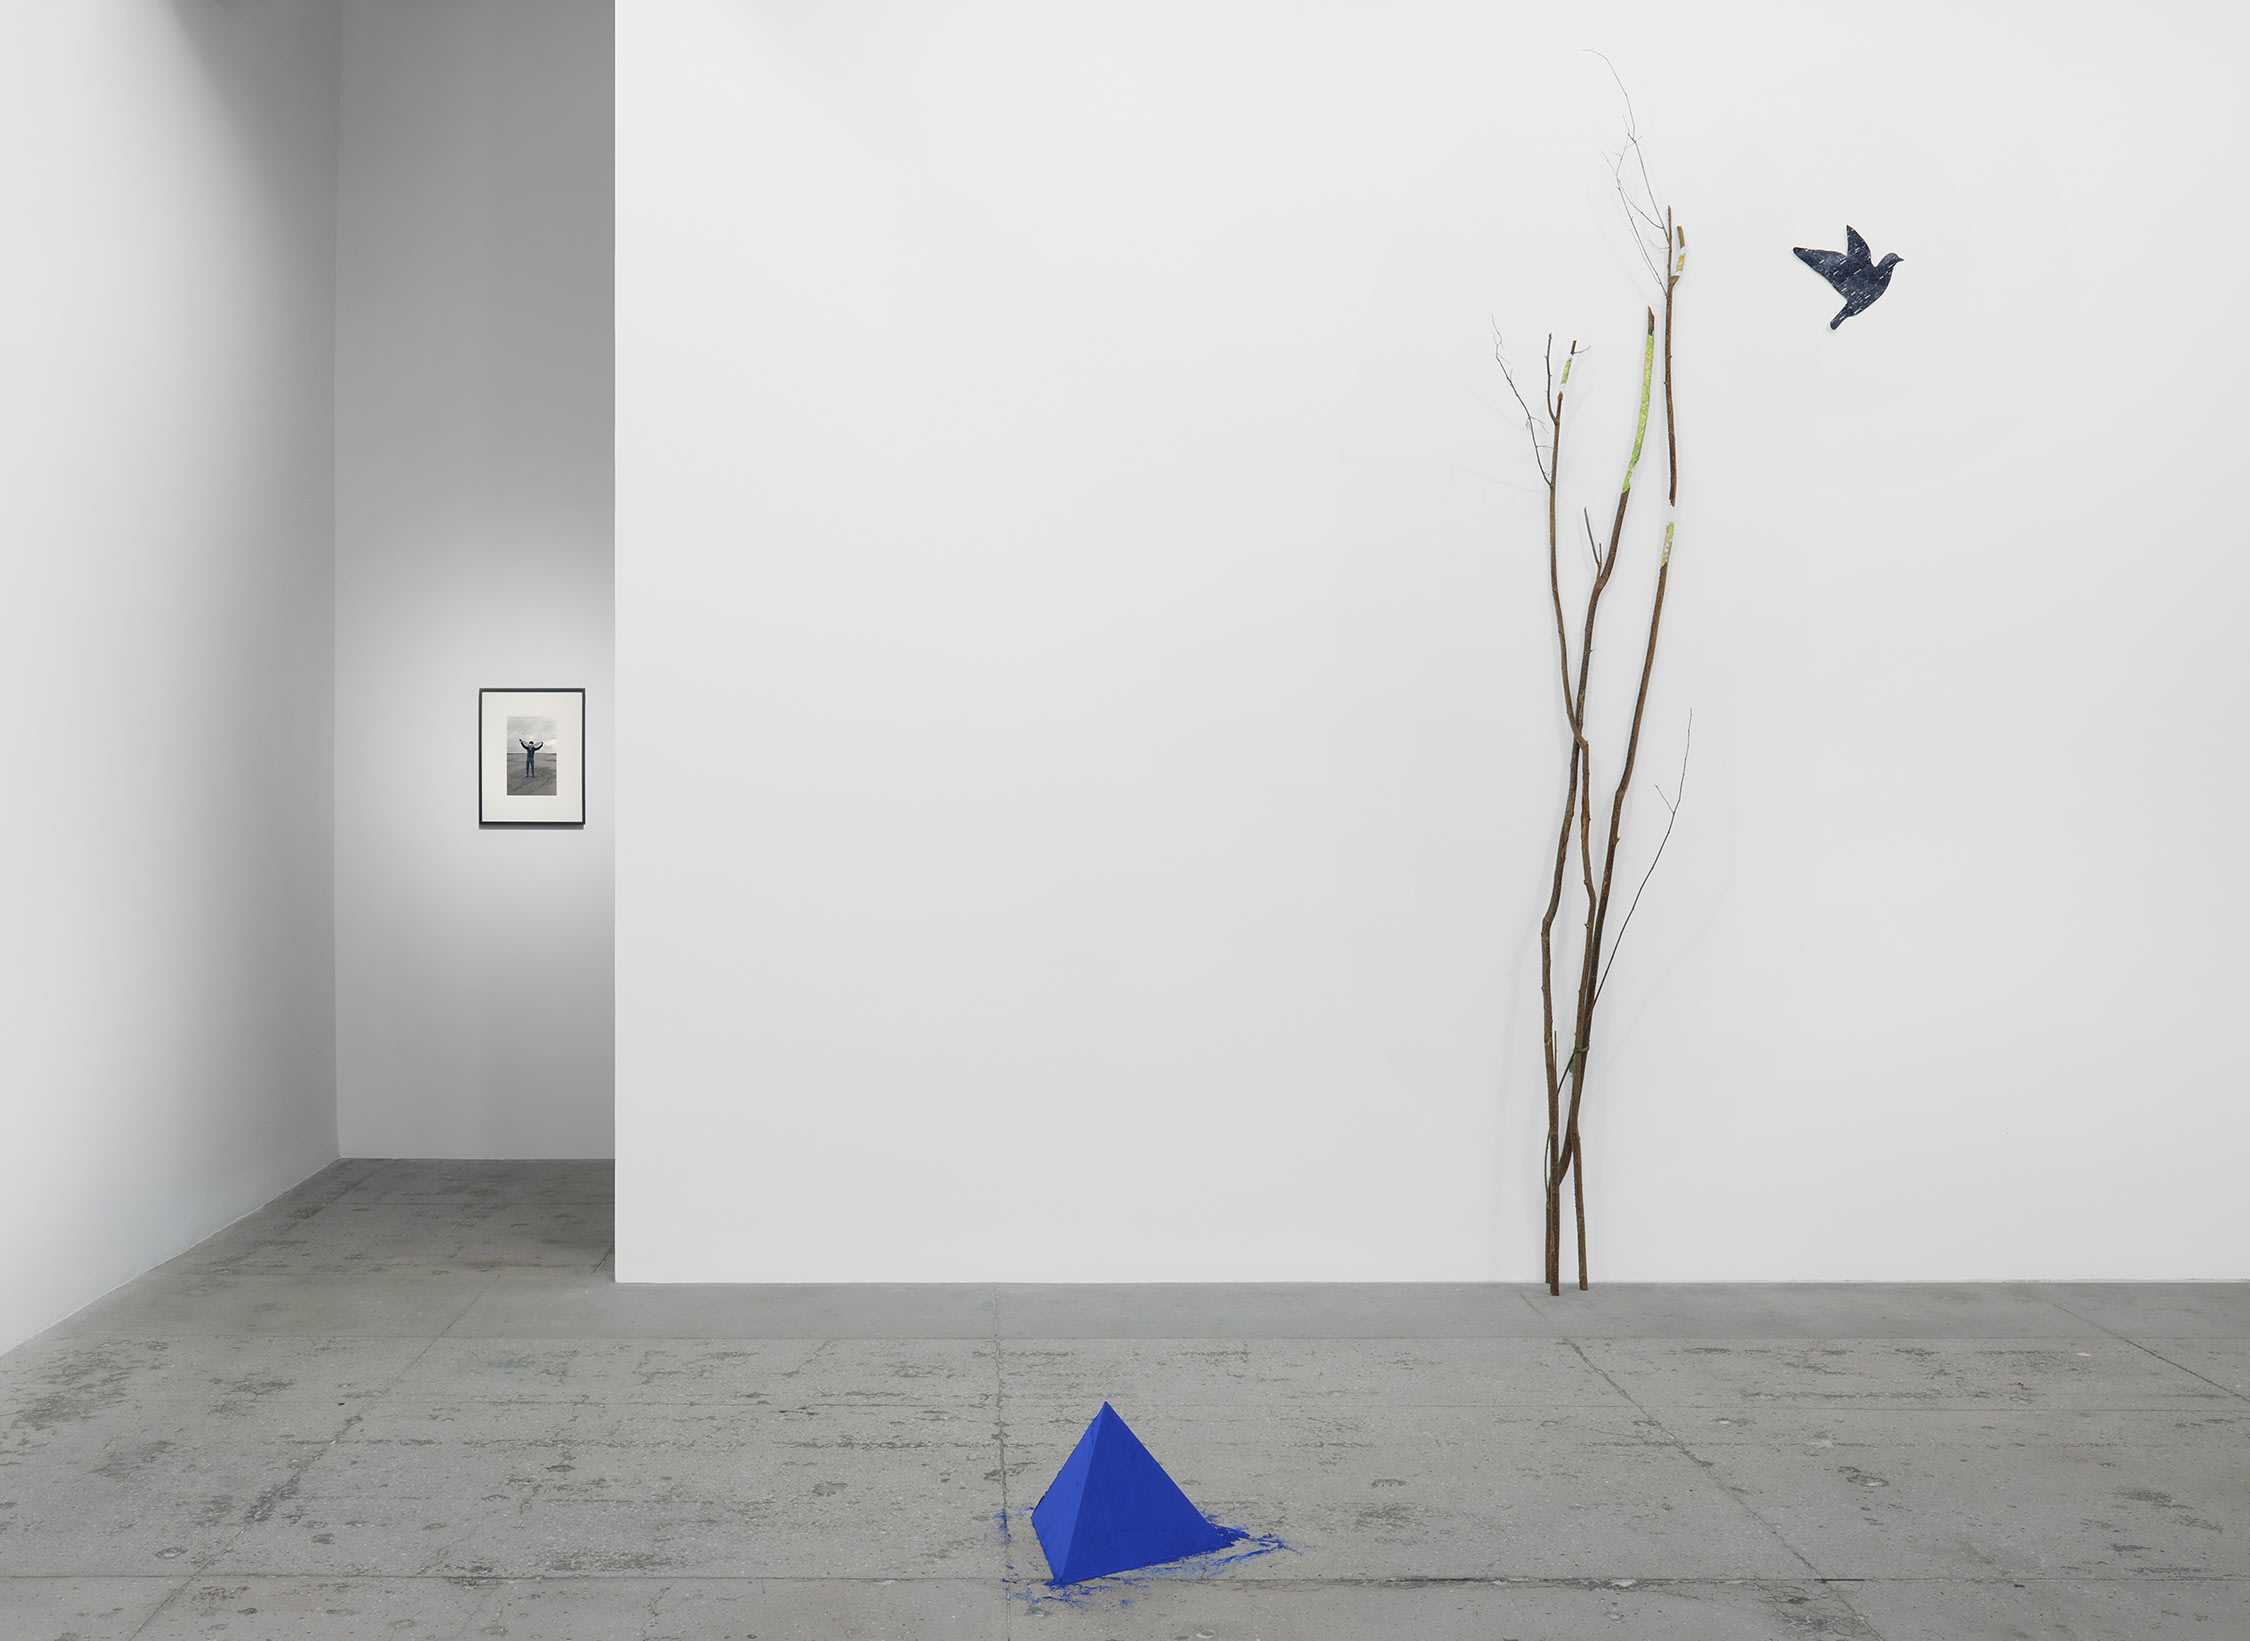 installation view of works by Lothar Baumgarten: a tree branch on a wall with a bird flying towards it; a blue triangle made of powder on the floor